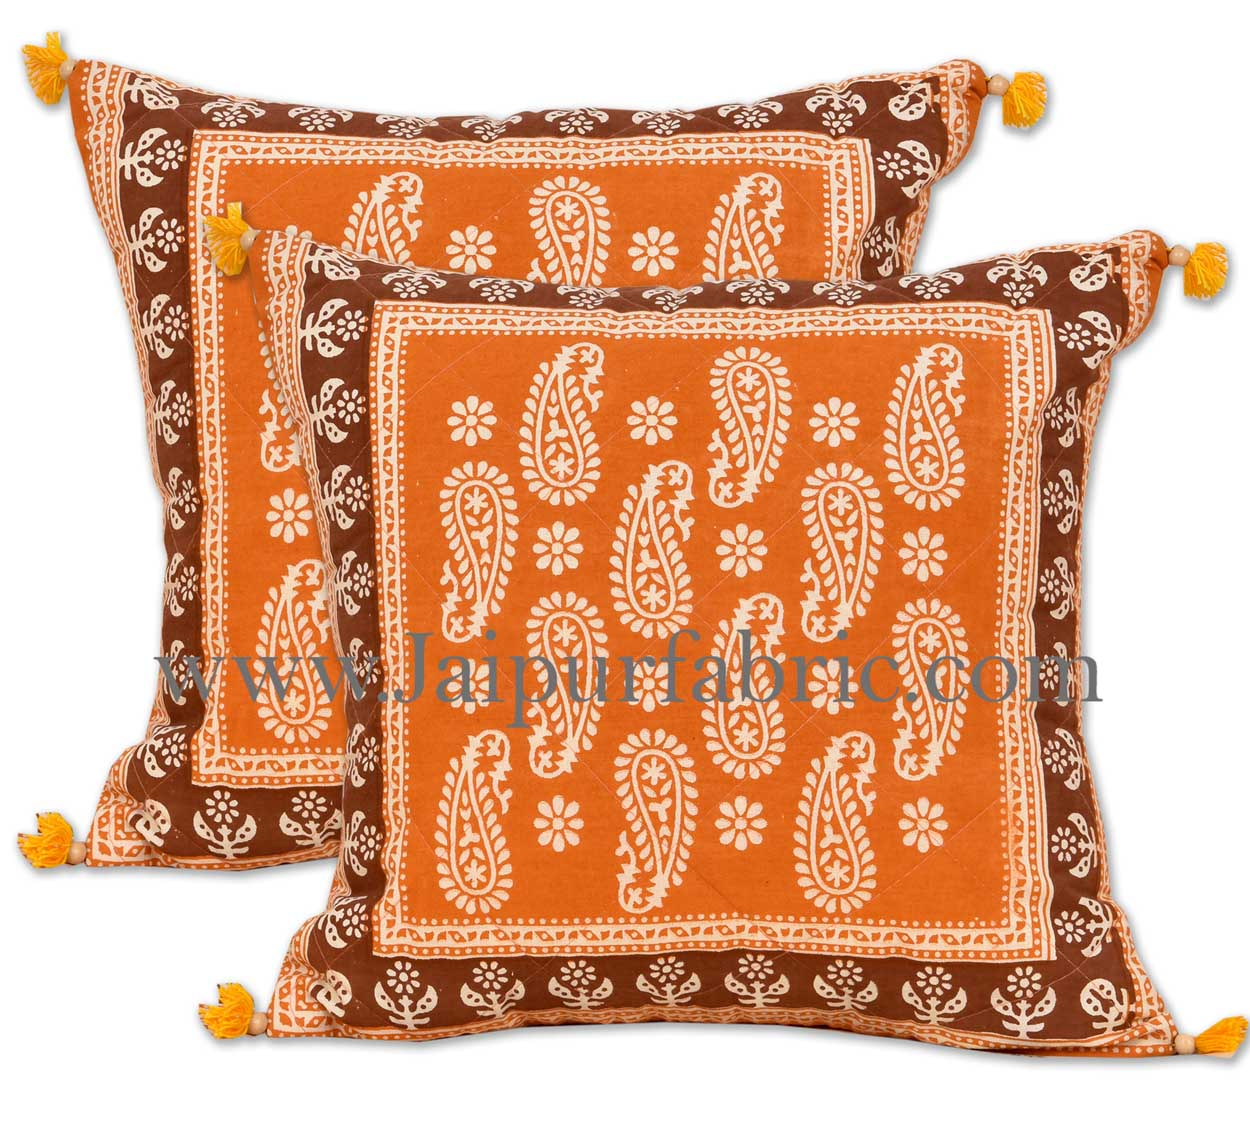 Orange maroon floral paisley diwan set